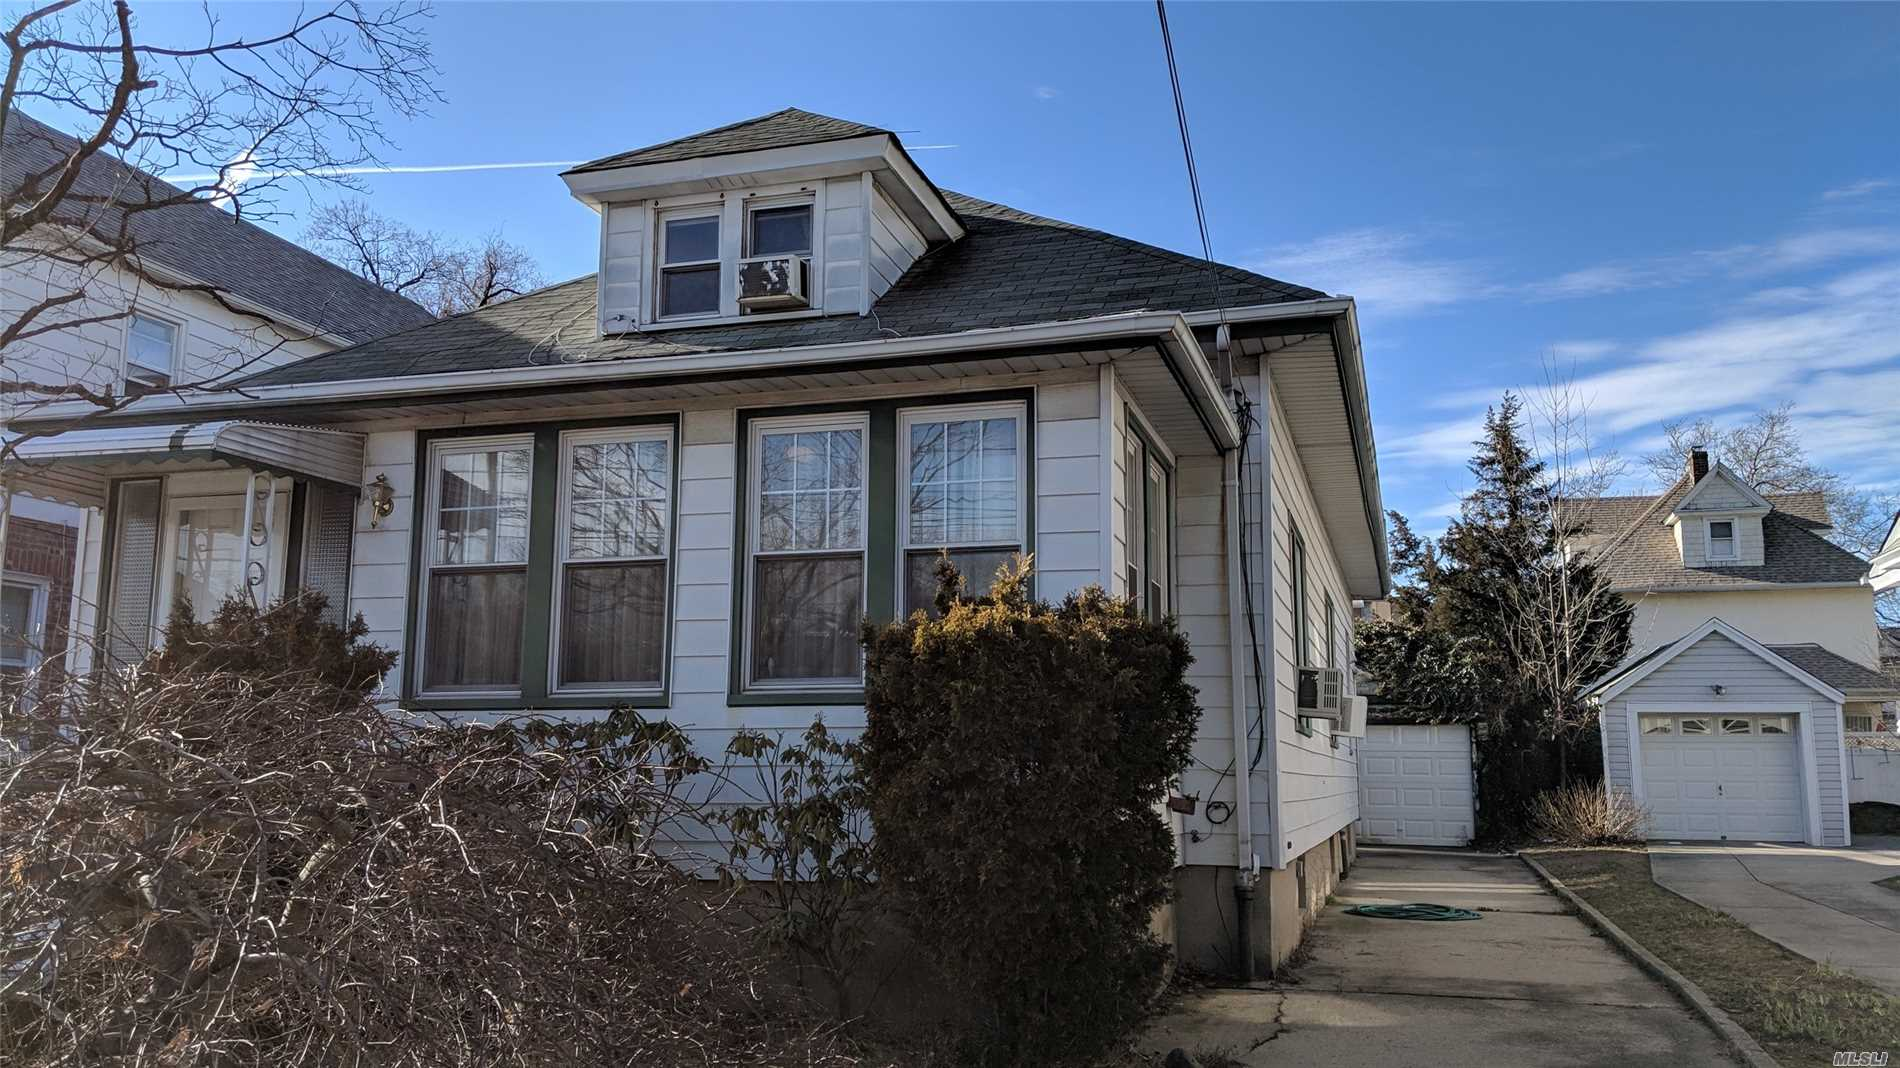 Large Detached & Renovated 1 Family With Granite Kitchen And 5 Bedrooms. Located Nearby Kissena Park, And Public Transportation. Private Driveway With 1 Car Garage.